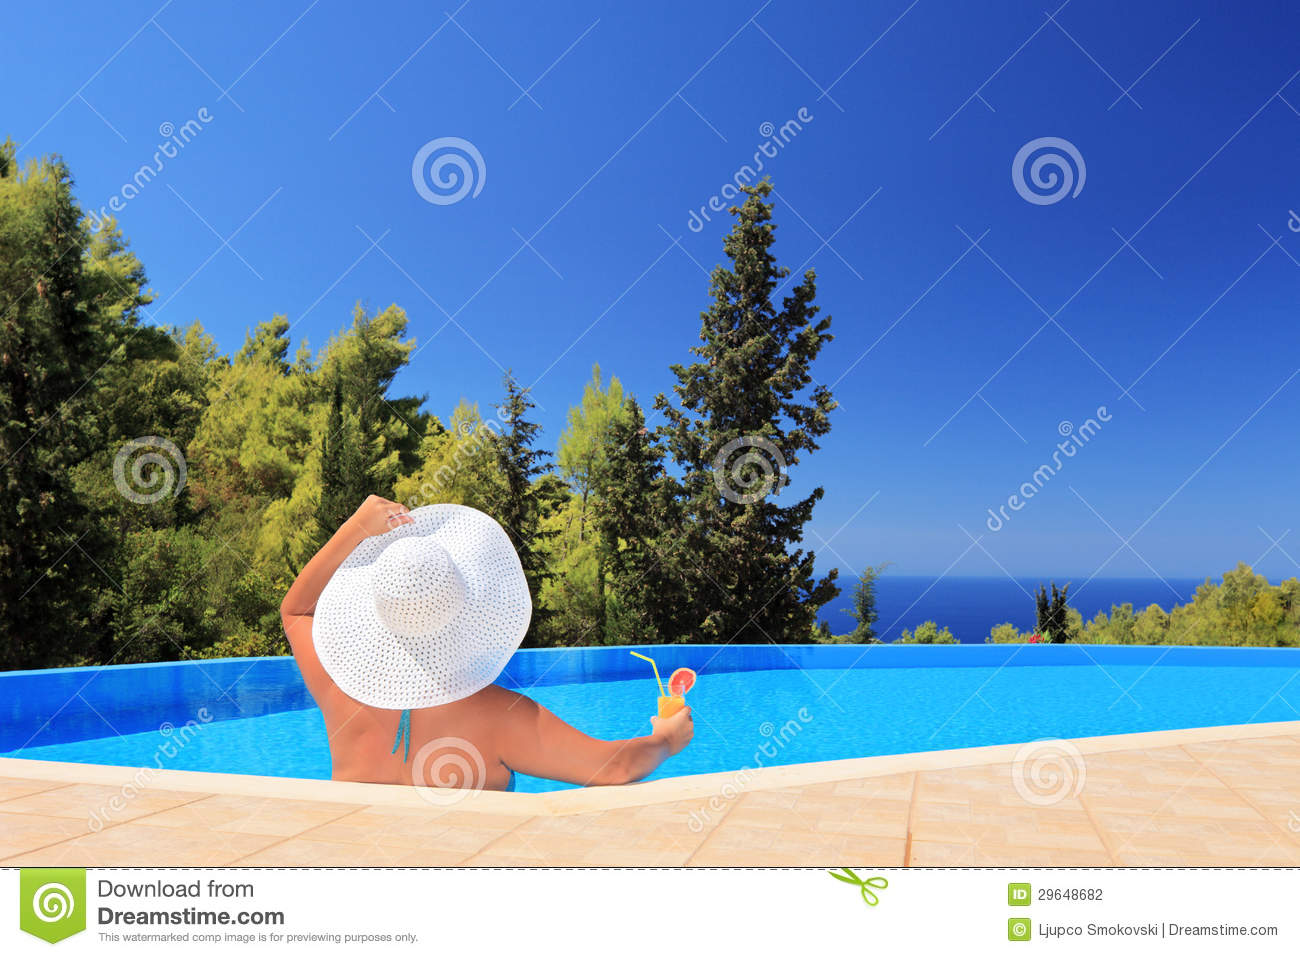 A woman relaxing in a swimming pool with cocktail